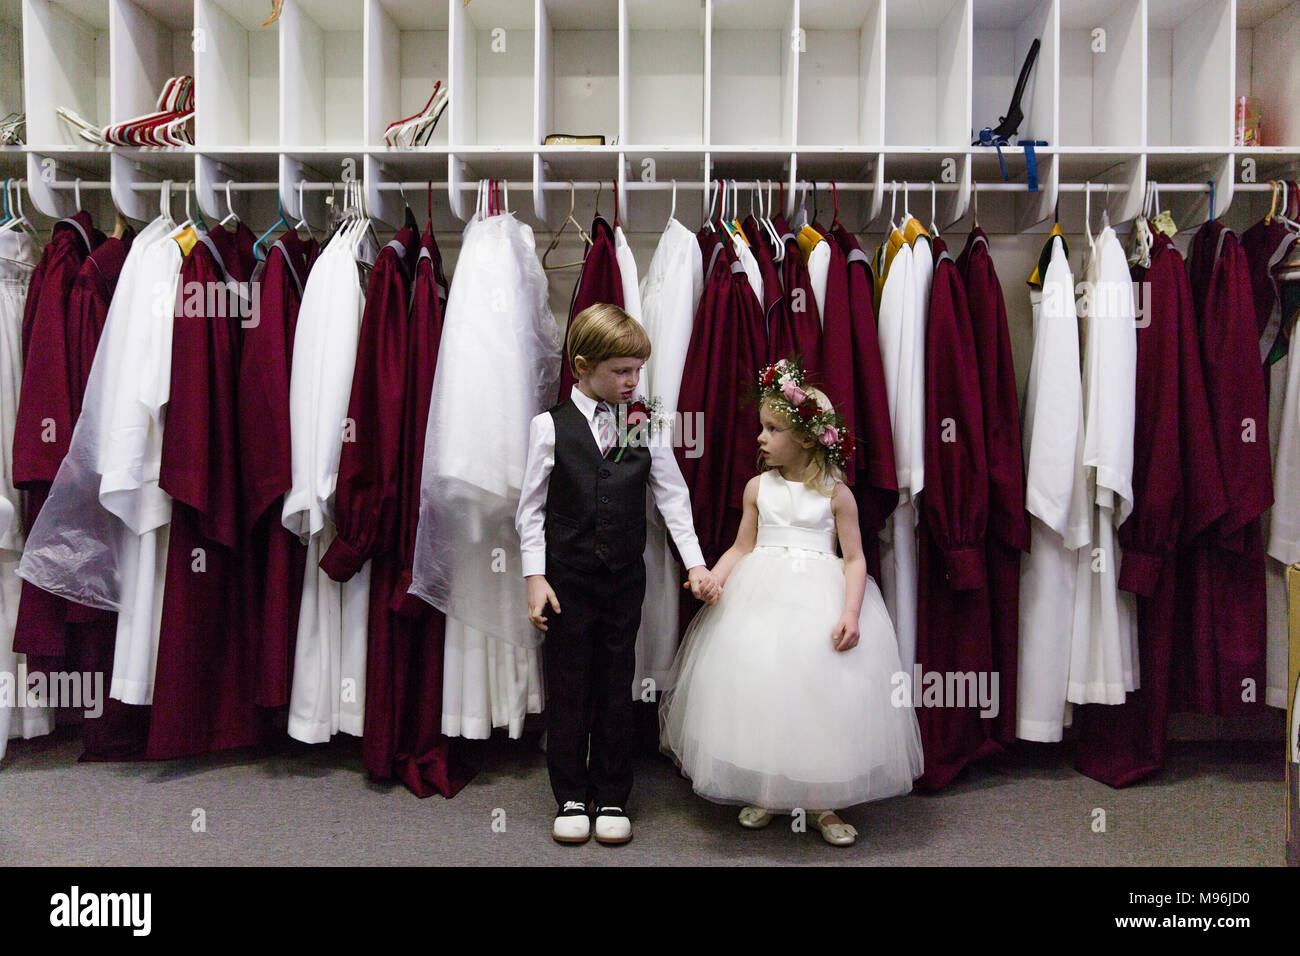 Boy and girl holding hands in front of choir robes Photo Stock